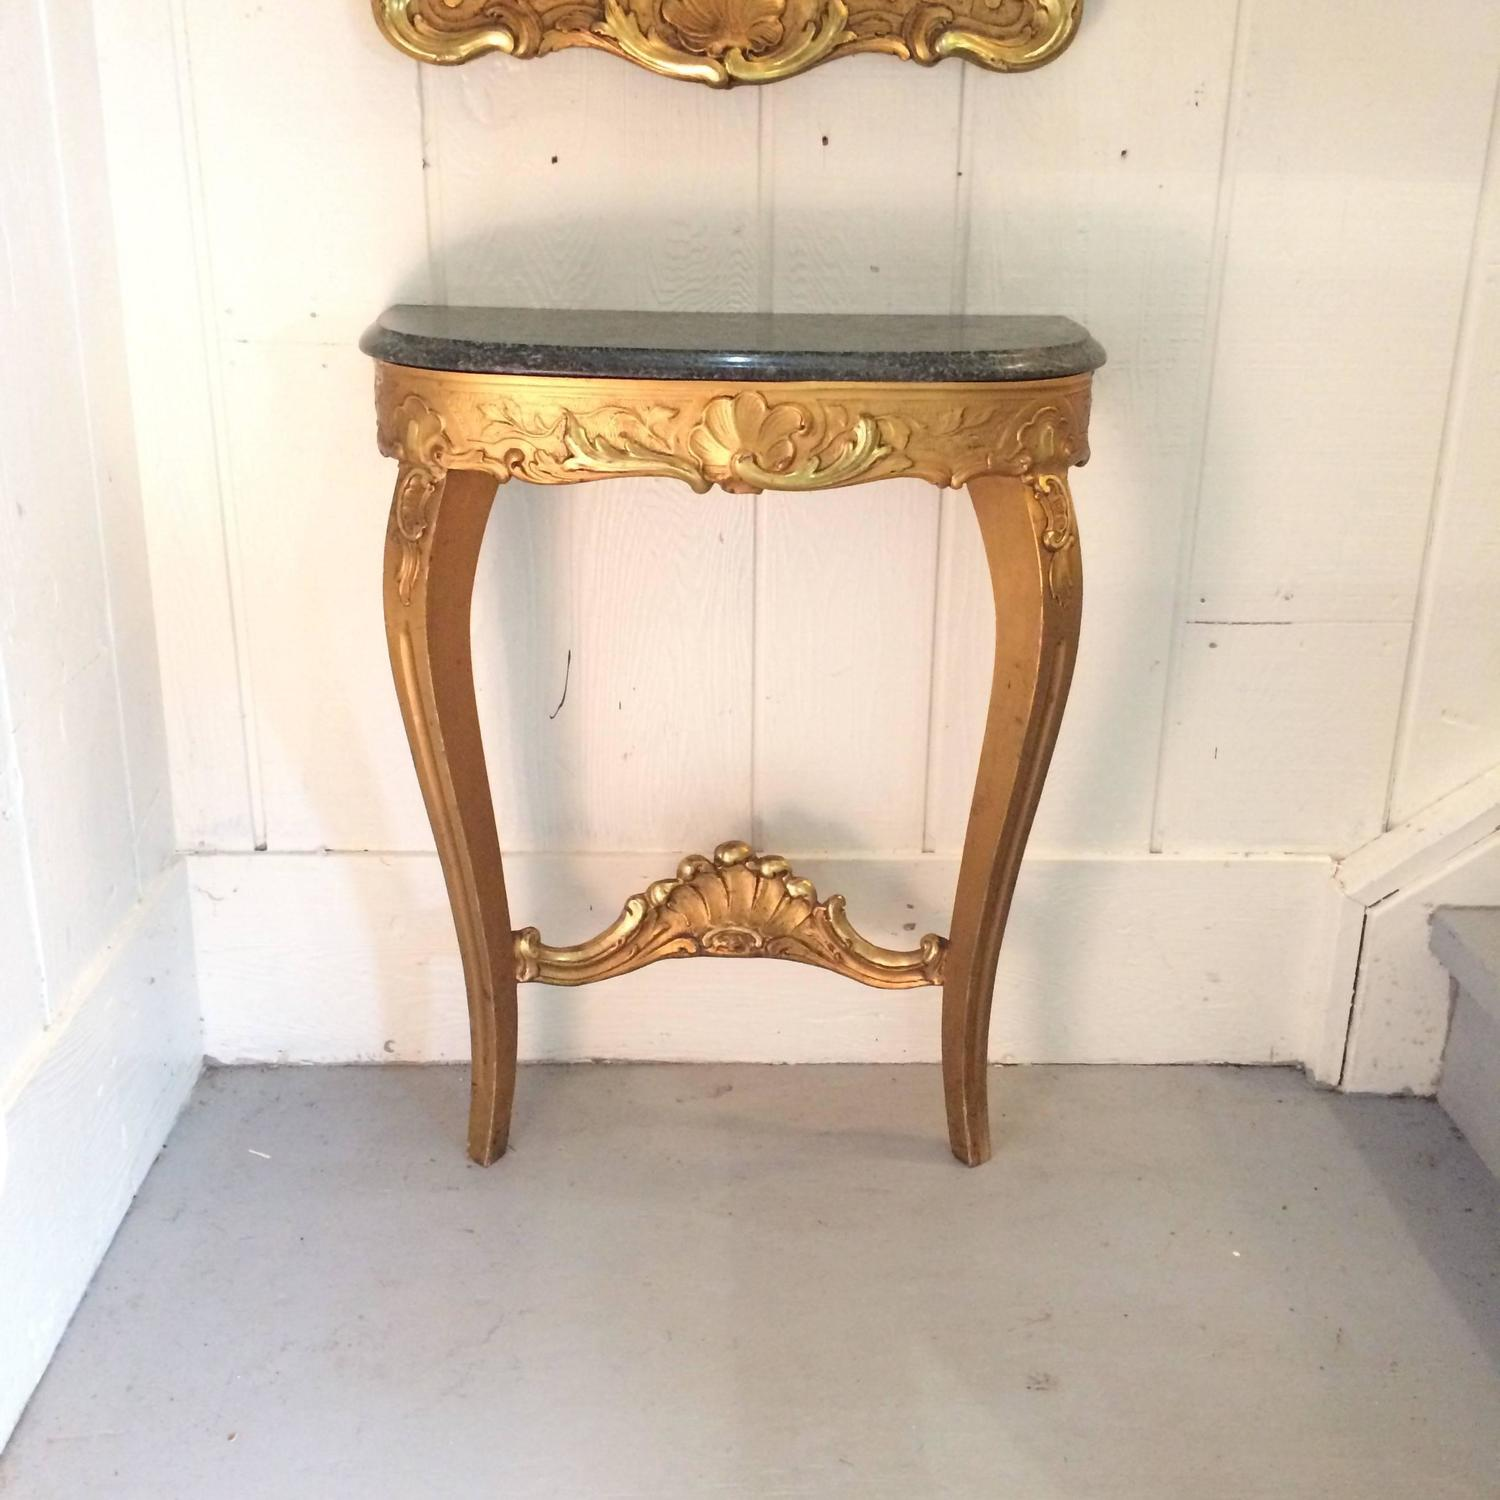 Foyer Table And Mirror On Sale On Kijiji : Lovely giltwood and marble hall table mirror set for